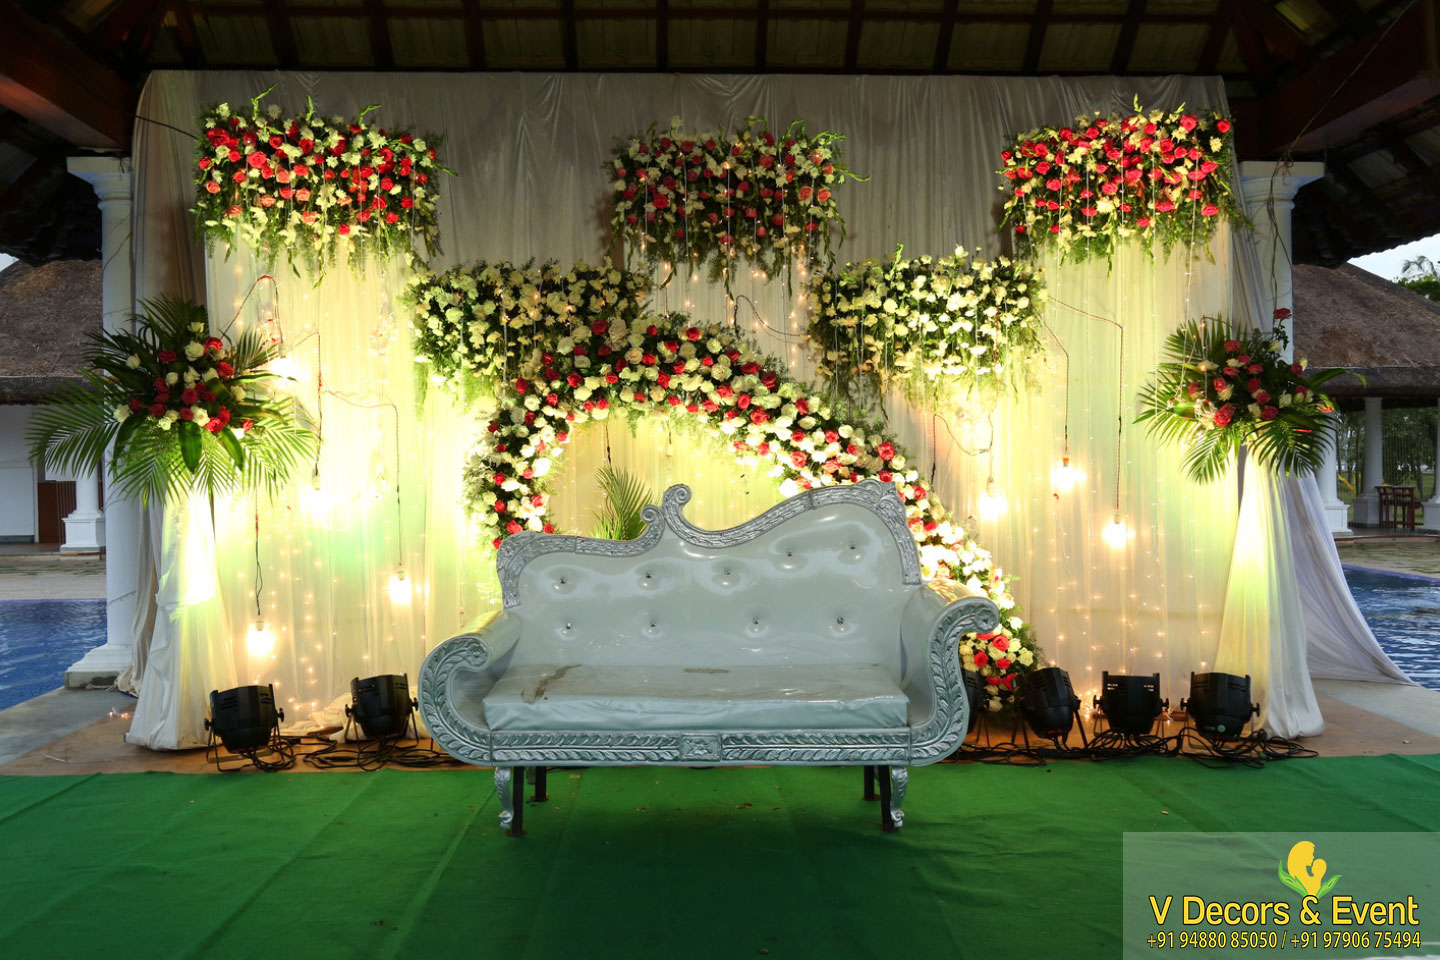 Betrothal decorations Le Pondy